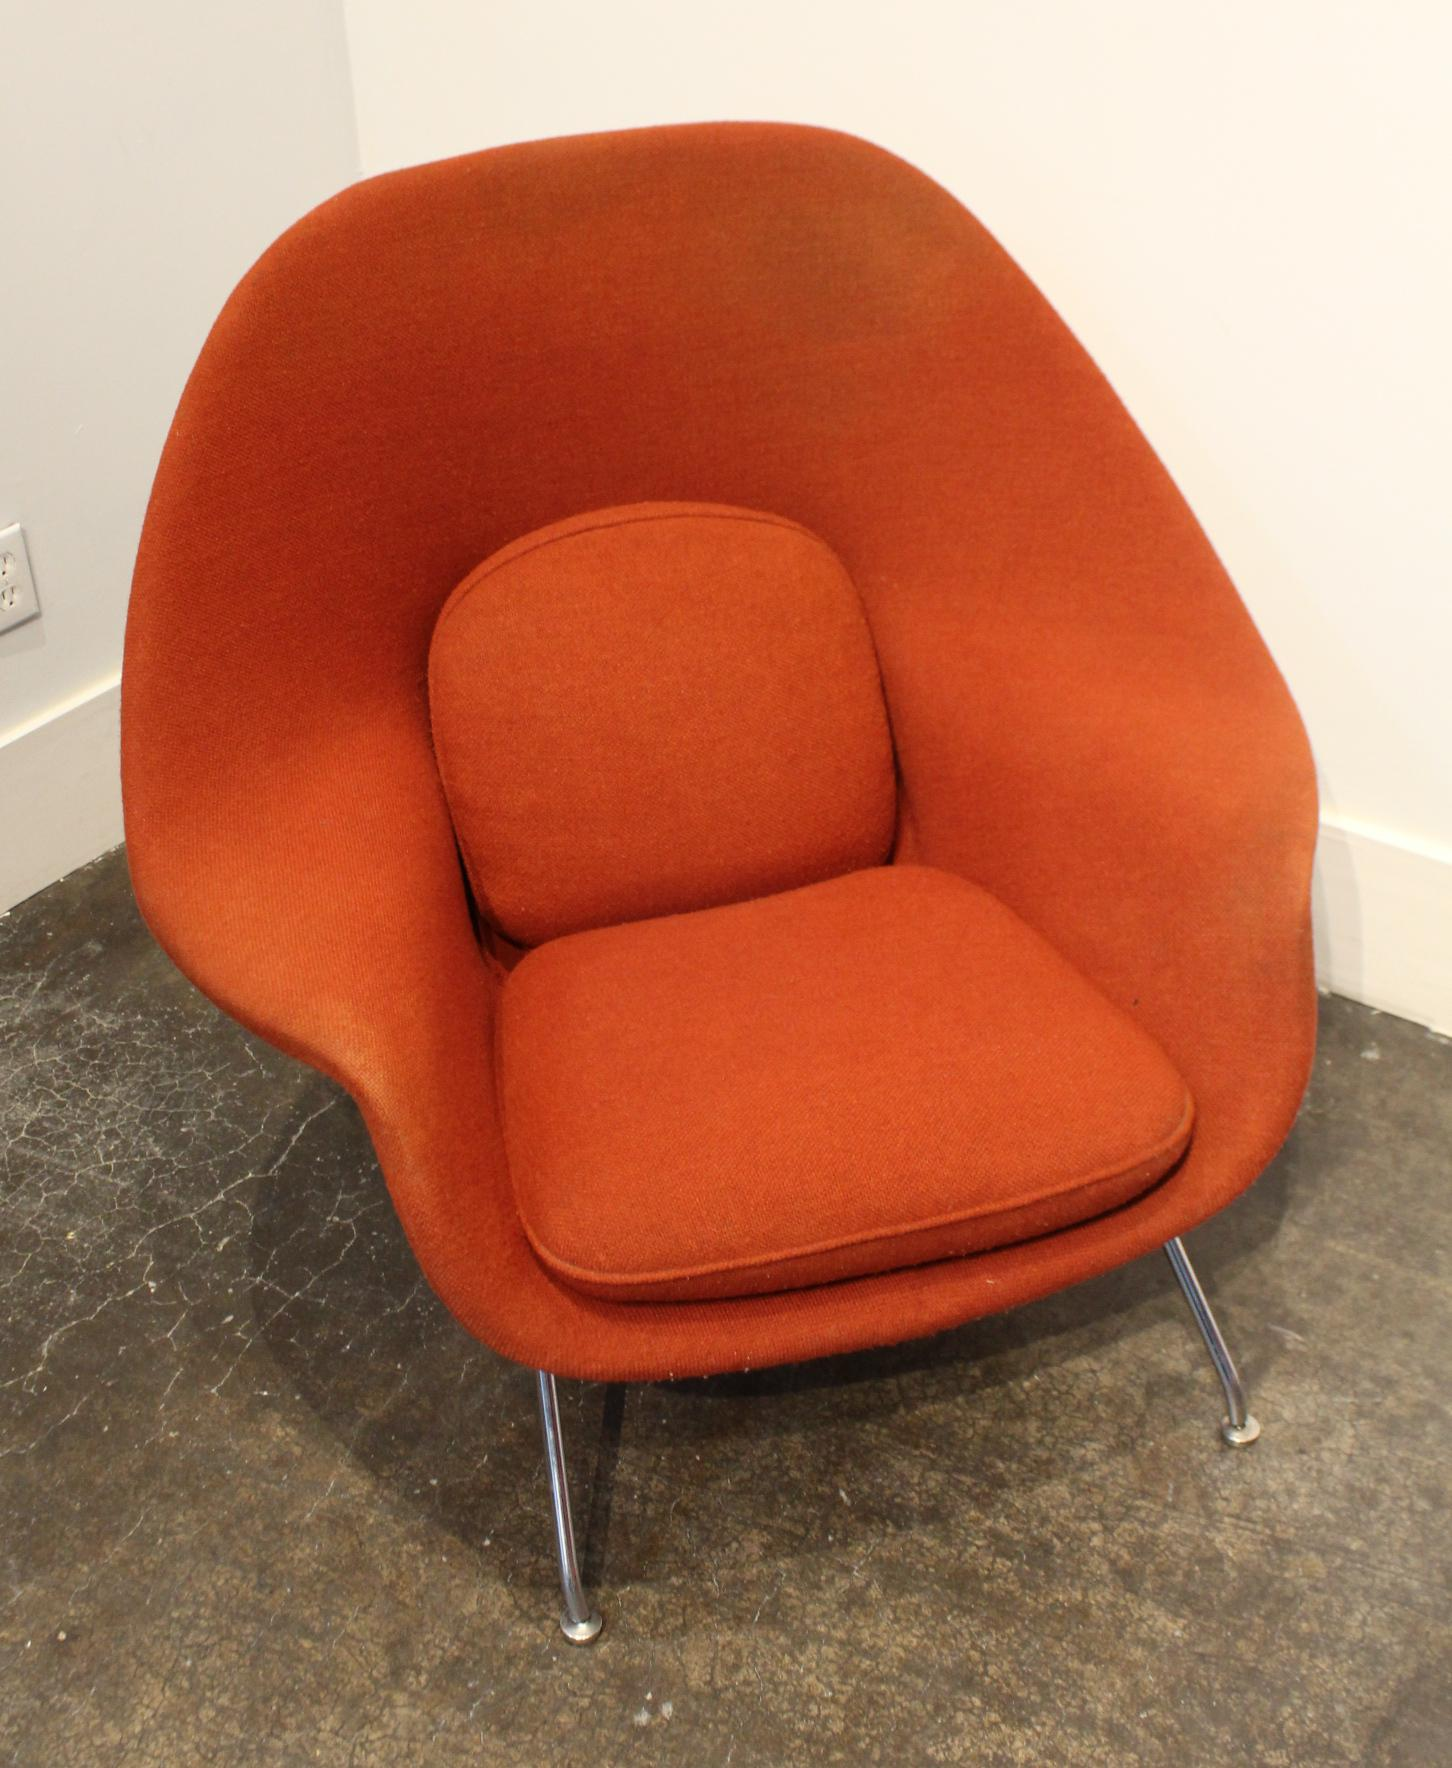 1960s Vintage Knoll Eero Saarinen Womb Chair And Ottoman Set, Circa 1960u0027s  For Sale